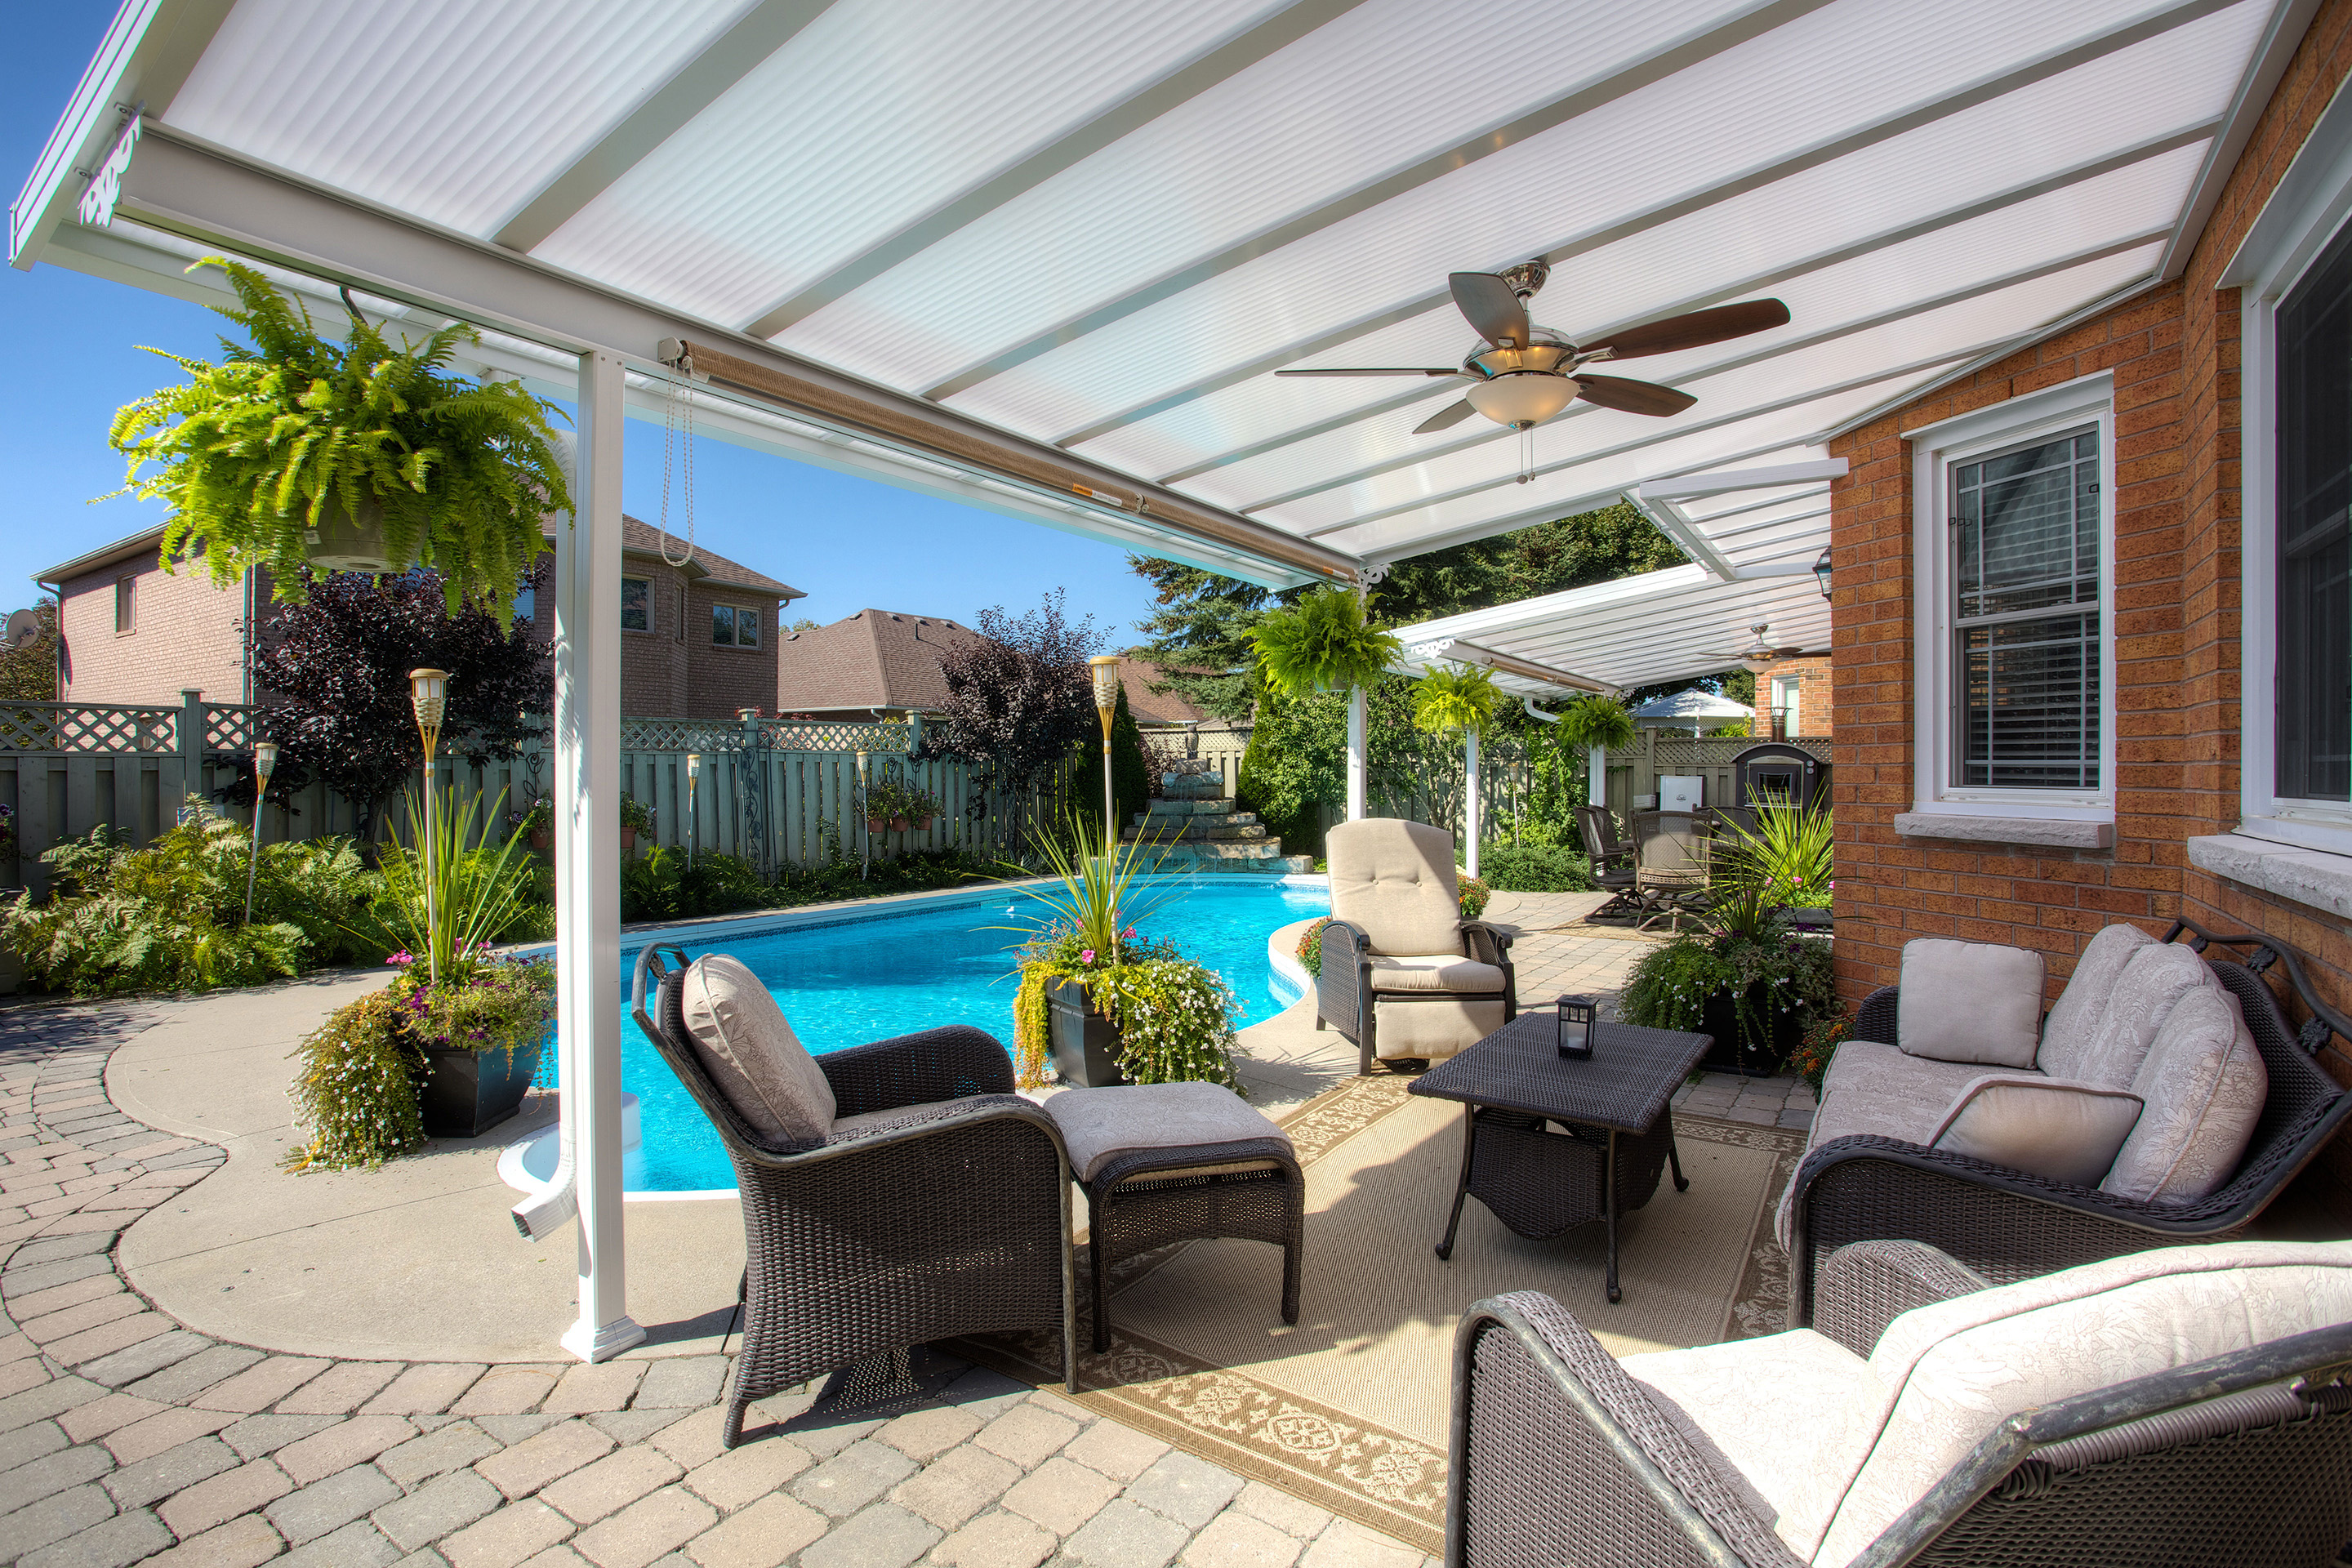 Patio Cover Options in Canada | Lumon on Patio Cover Ideas For Winter id=45701